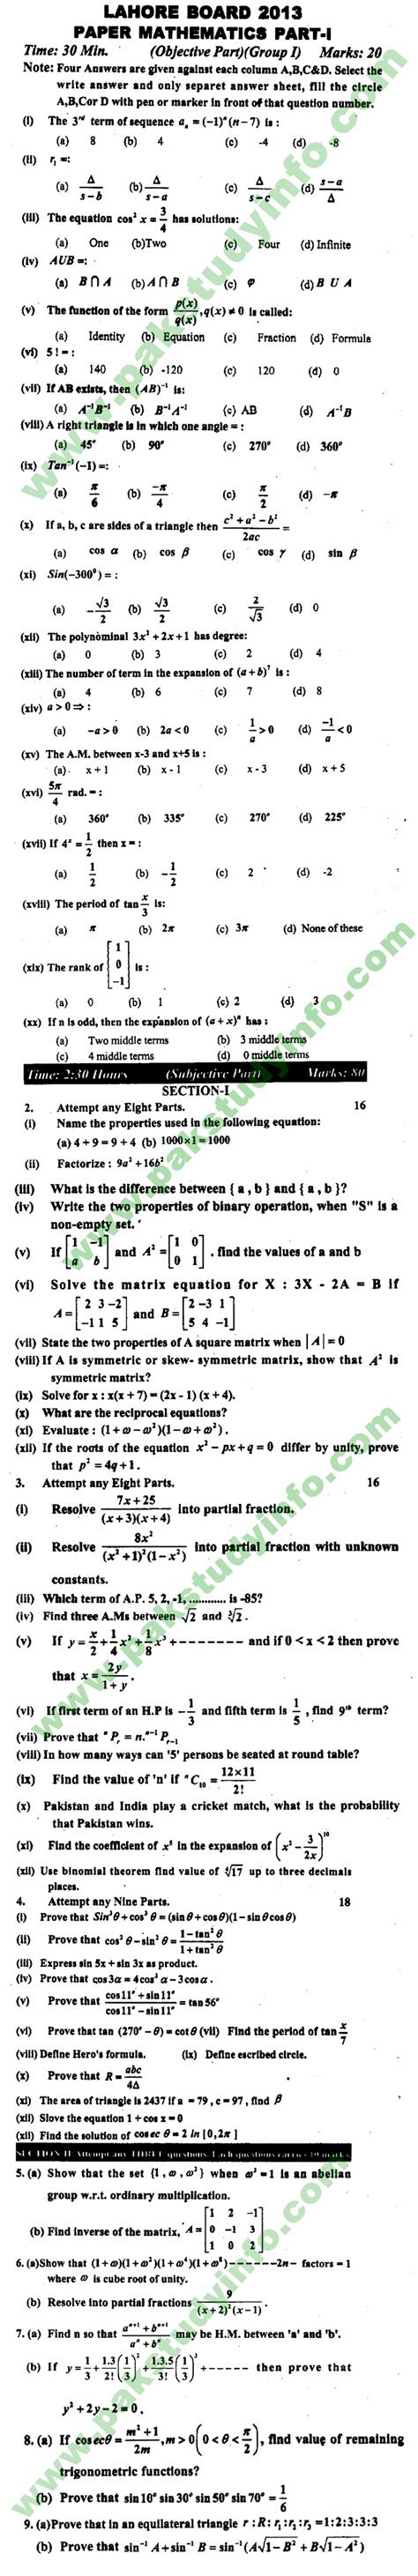 paper pattern 1st year rawalpindi board maths practice papers 11th class model paper maths old